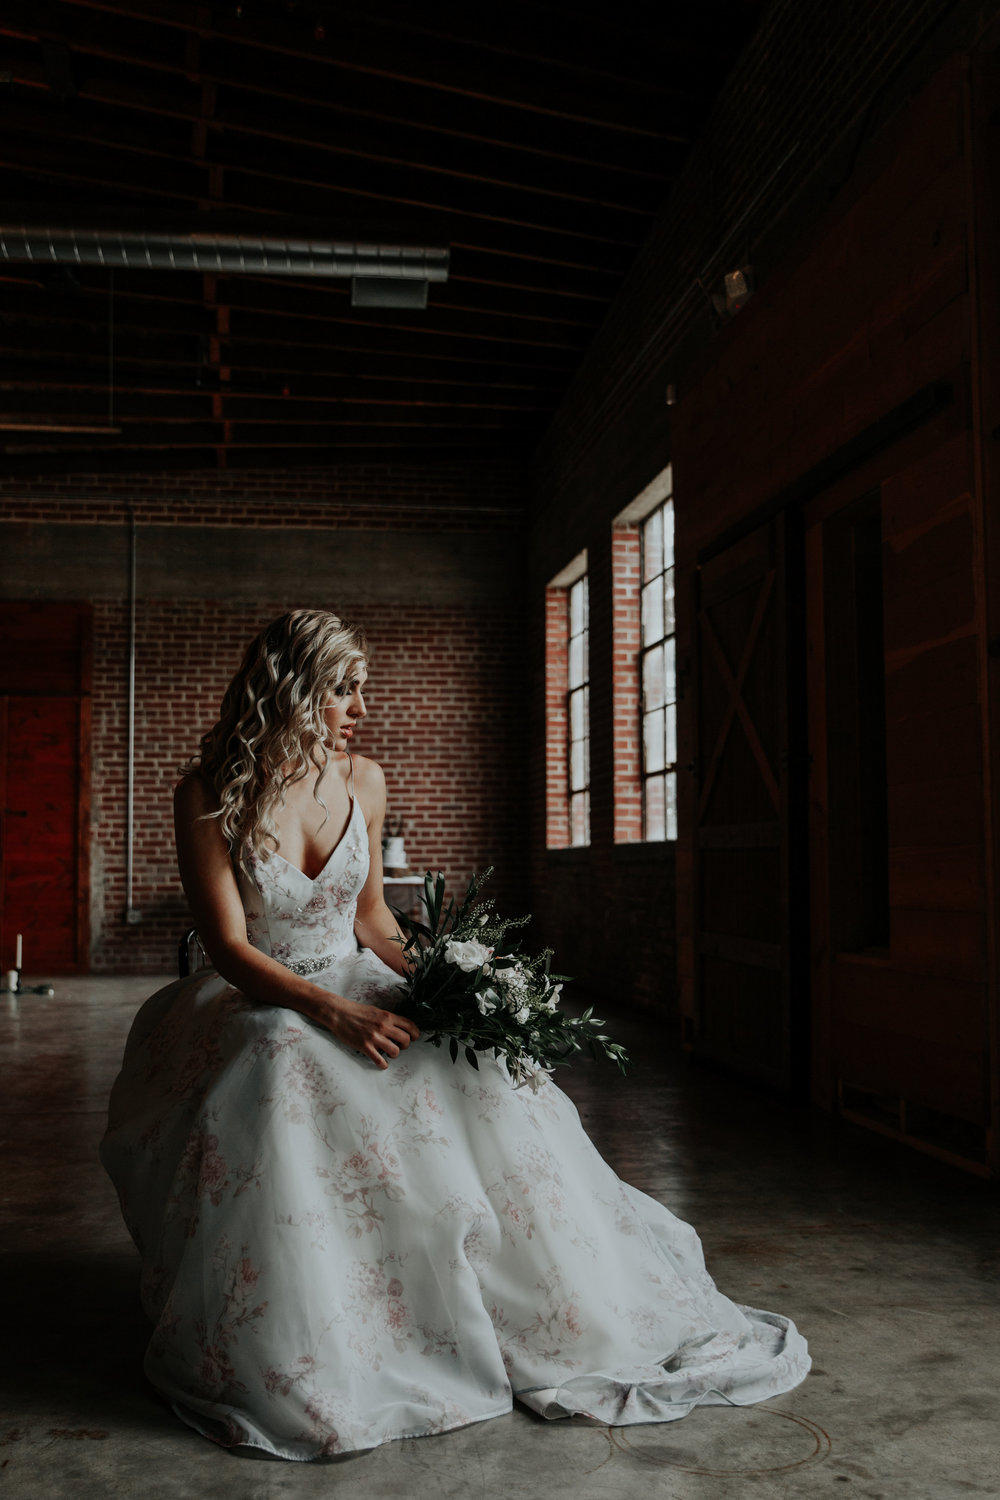 Moody bridal portrait session sets the tone for glamorous wedding in this styled shoot by Be Images Photography.